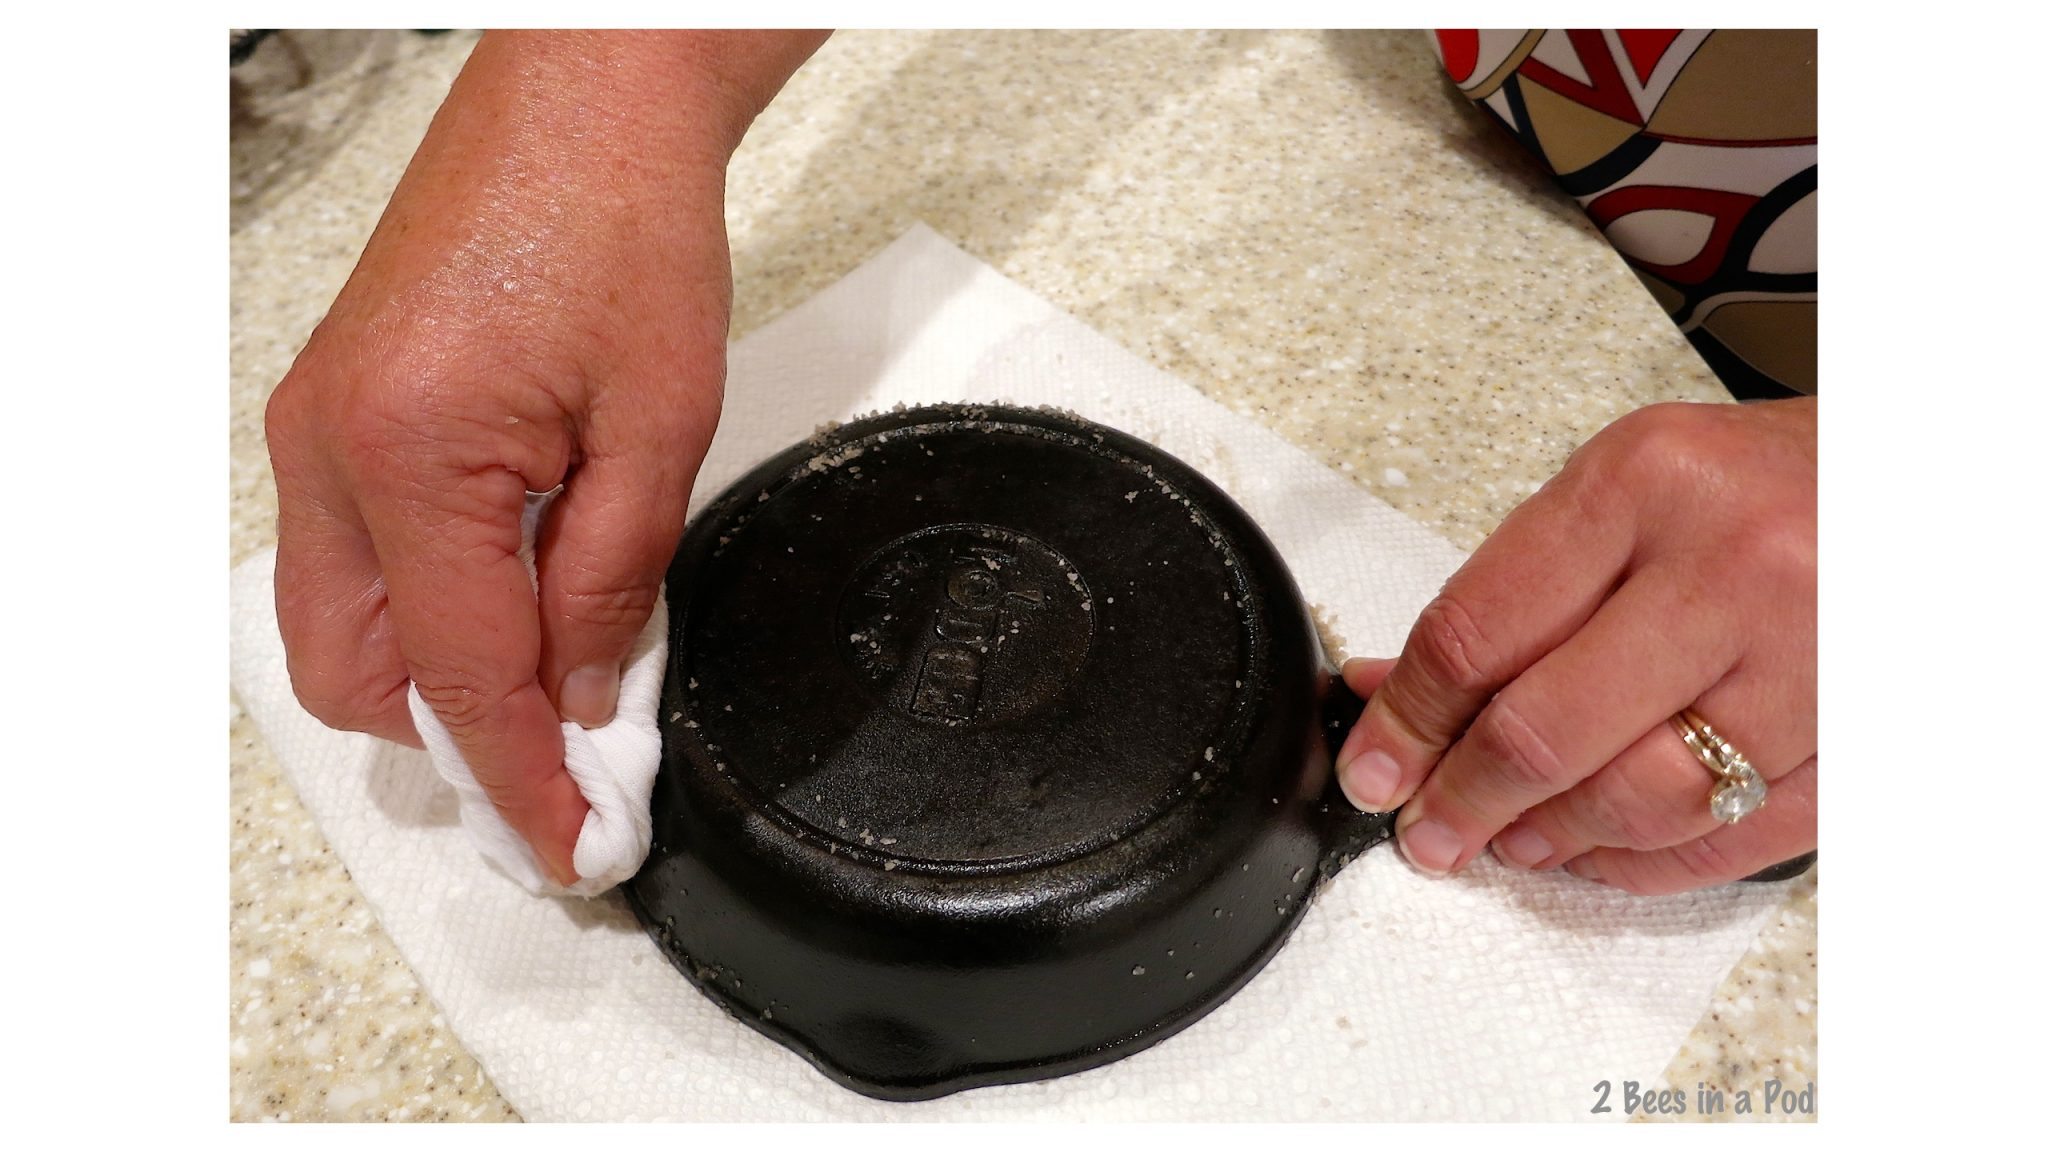 Wipe off excess oil and sea salt when reviving cast iron